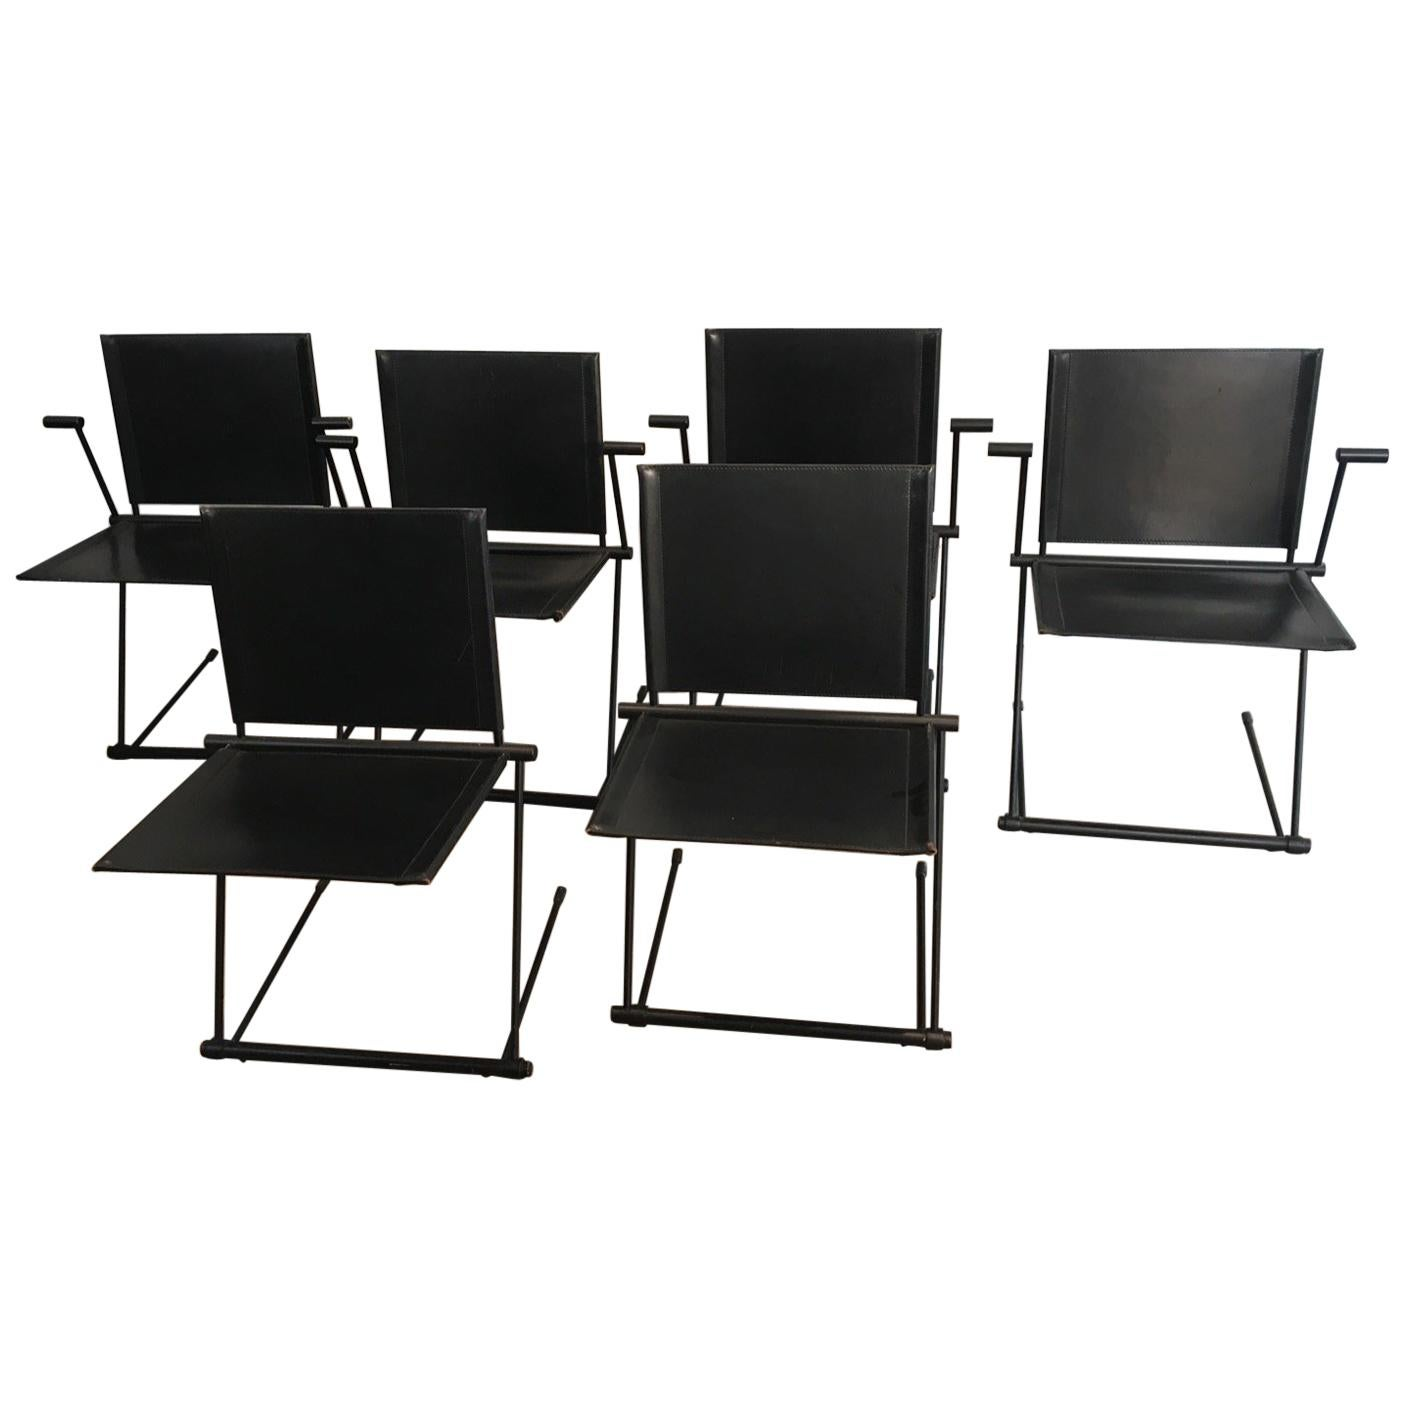 Set of 6 Chairs. Black Lacquered Metal and Leather Chairs and Armchairs